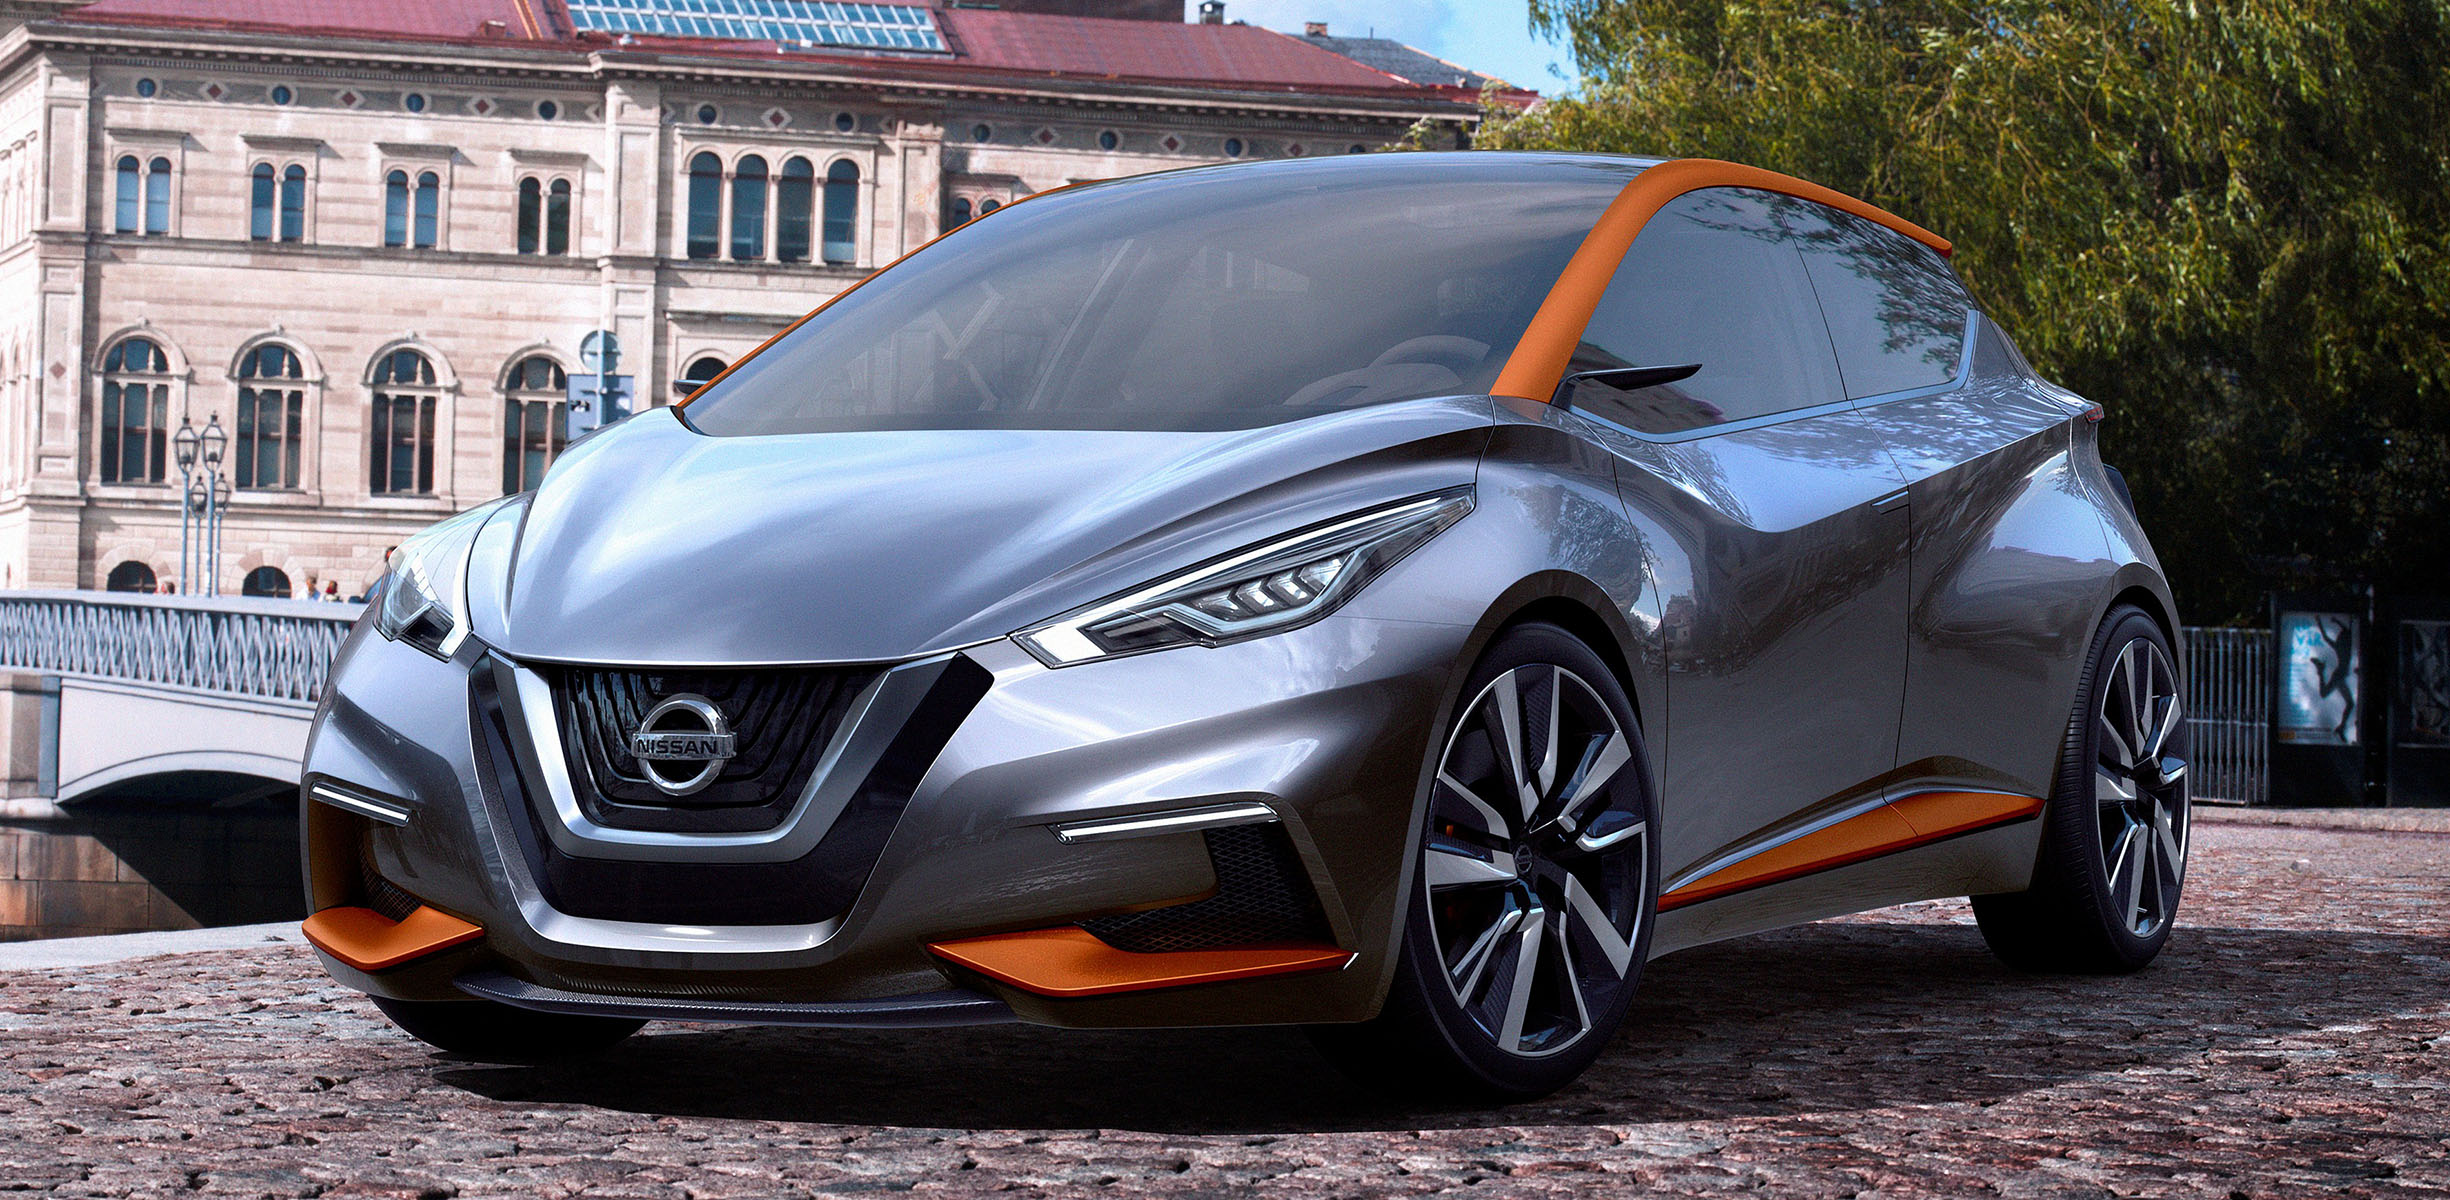 2017 nissan micra spied testing paris debut likely for. Black Bedroom Furniture Sets. Home Design Ideas